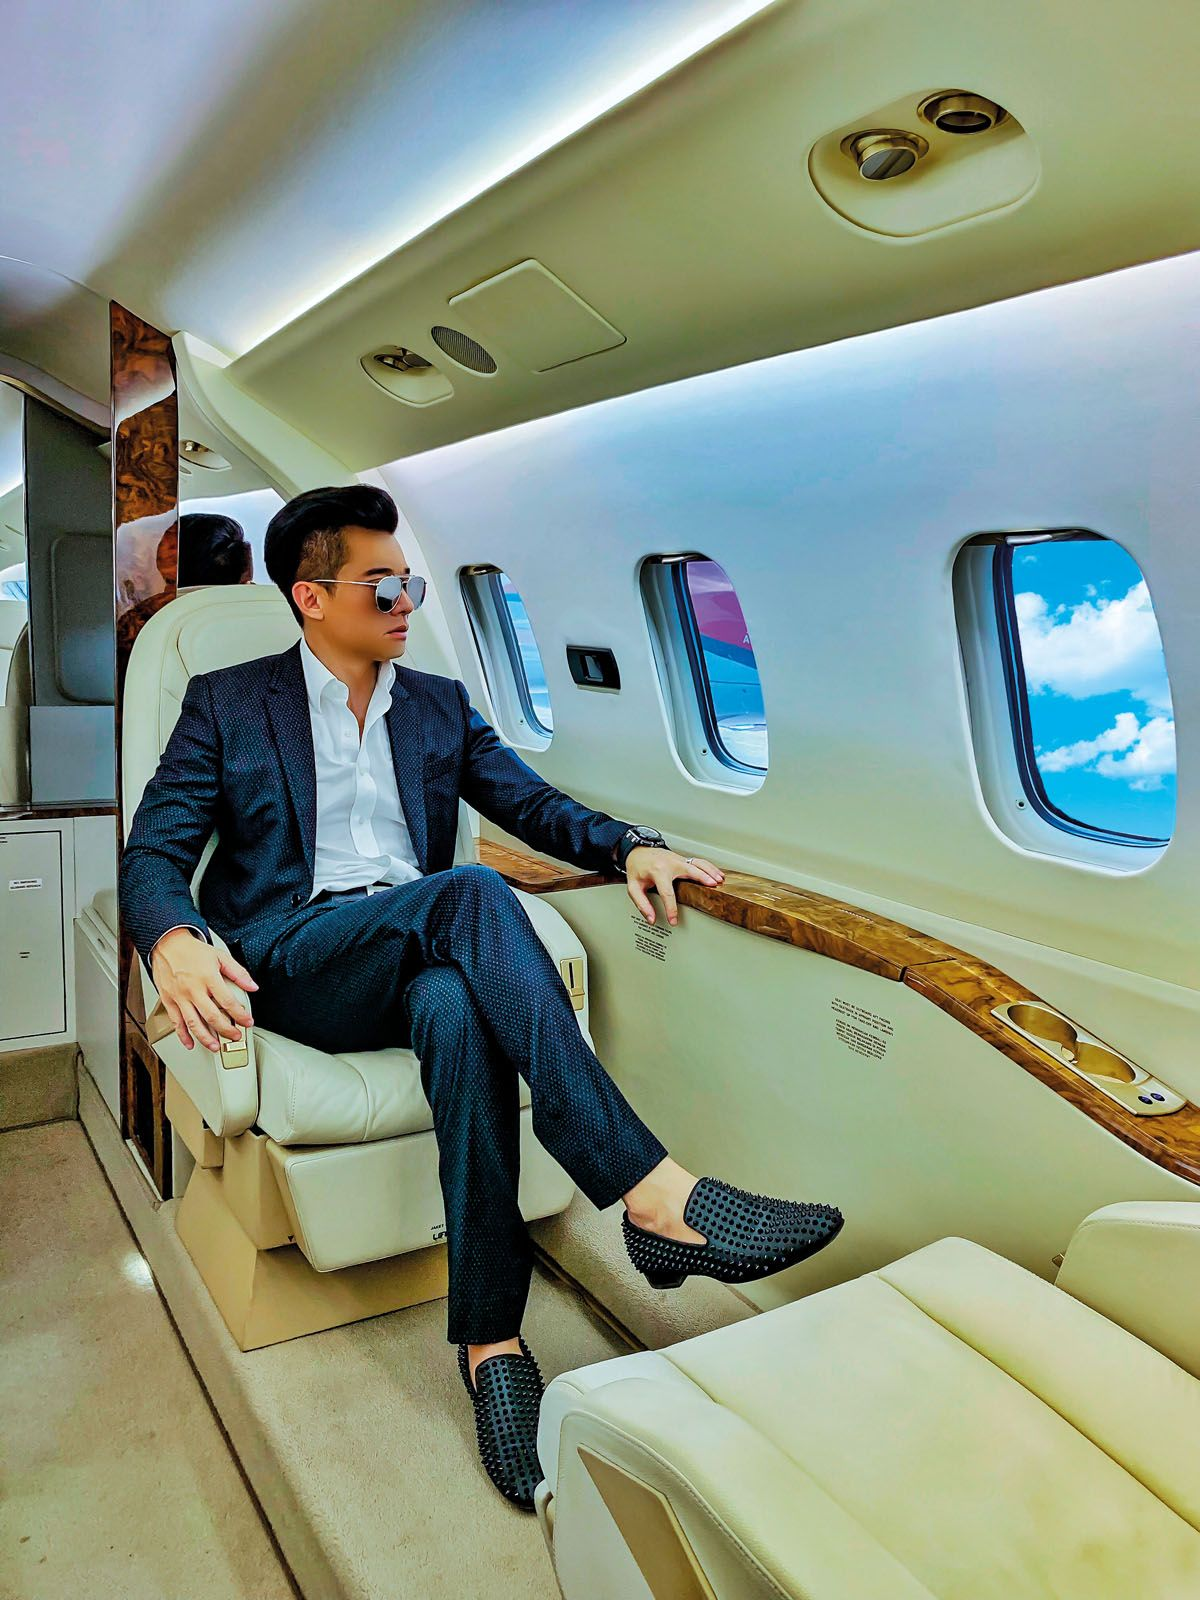 With his hectic work schedule taking him across continents, sometimes in the span of a couple of days, New often travels by private jet where he is able to enjoy some peaceful alone time, away from the hustle and bustle